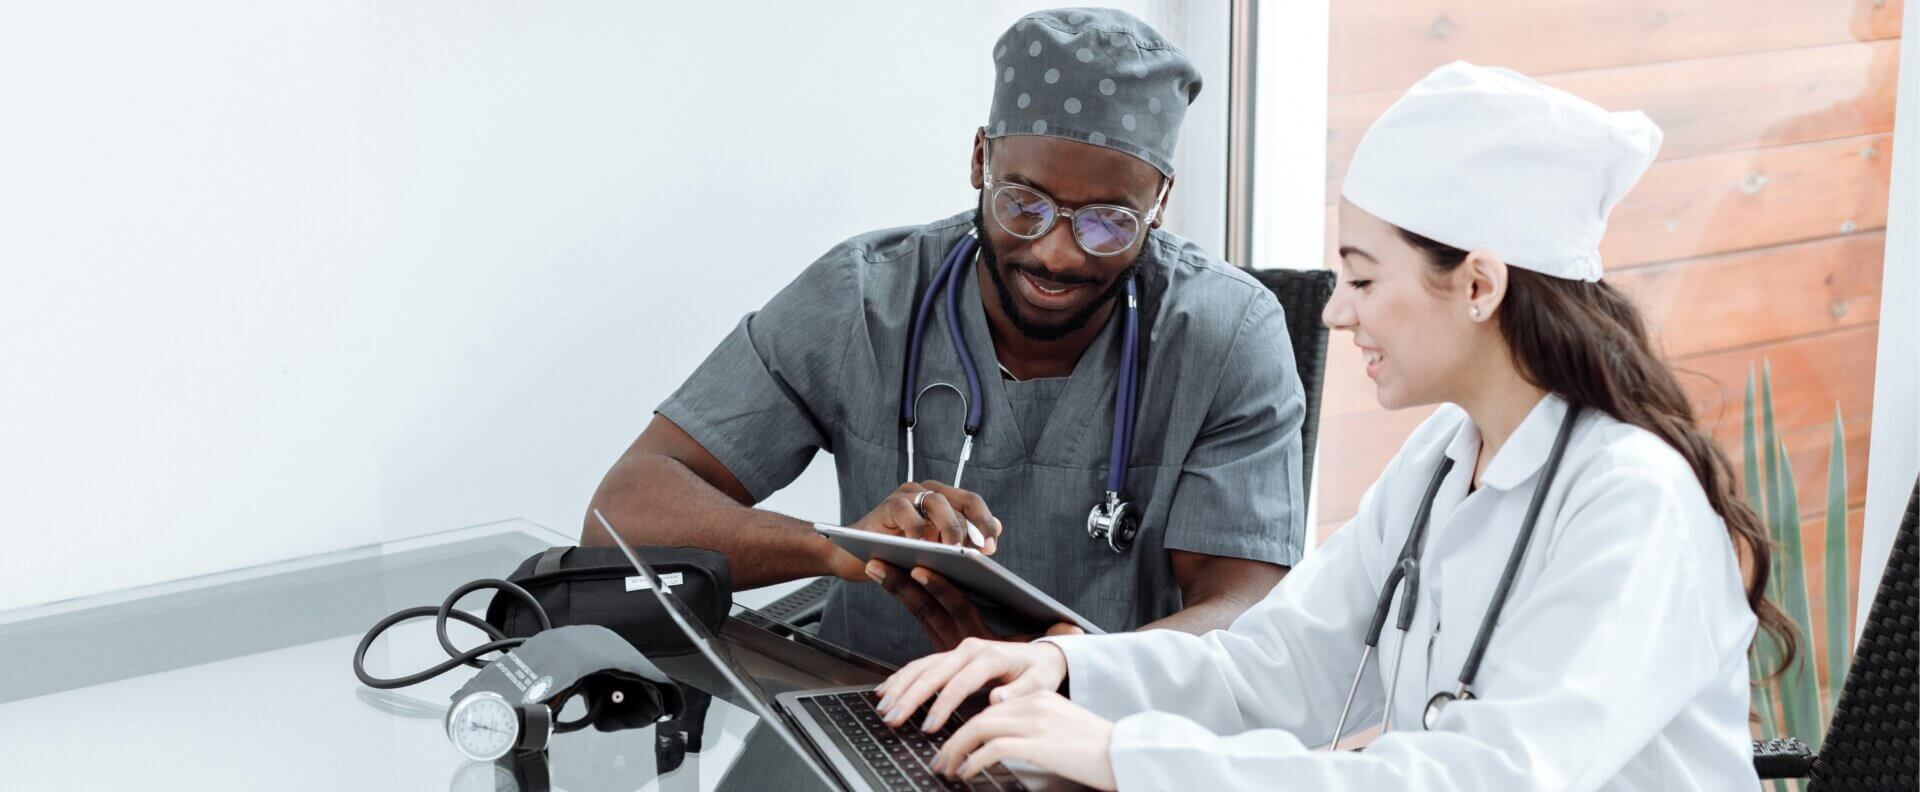 doctors discussing patient information displayed on tablet